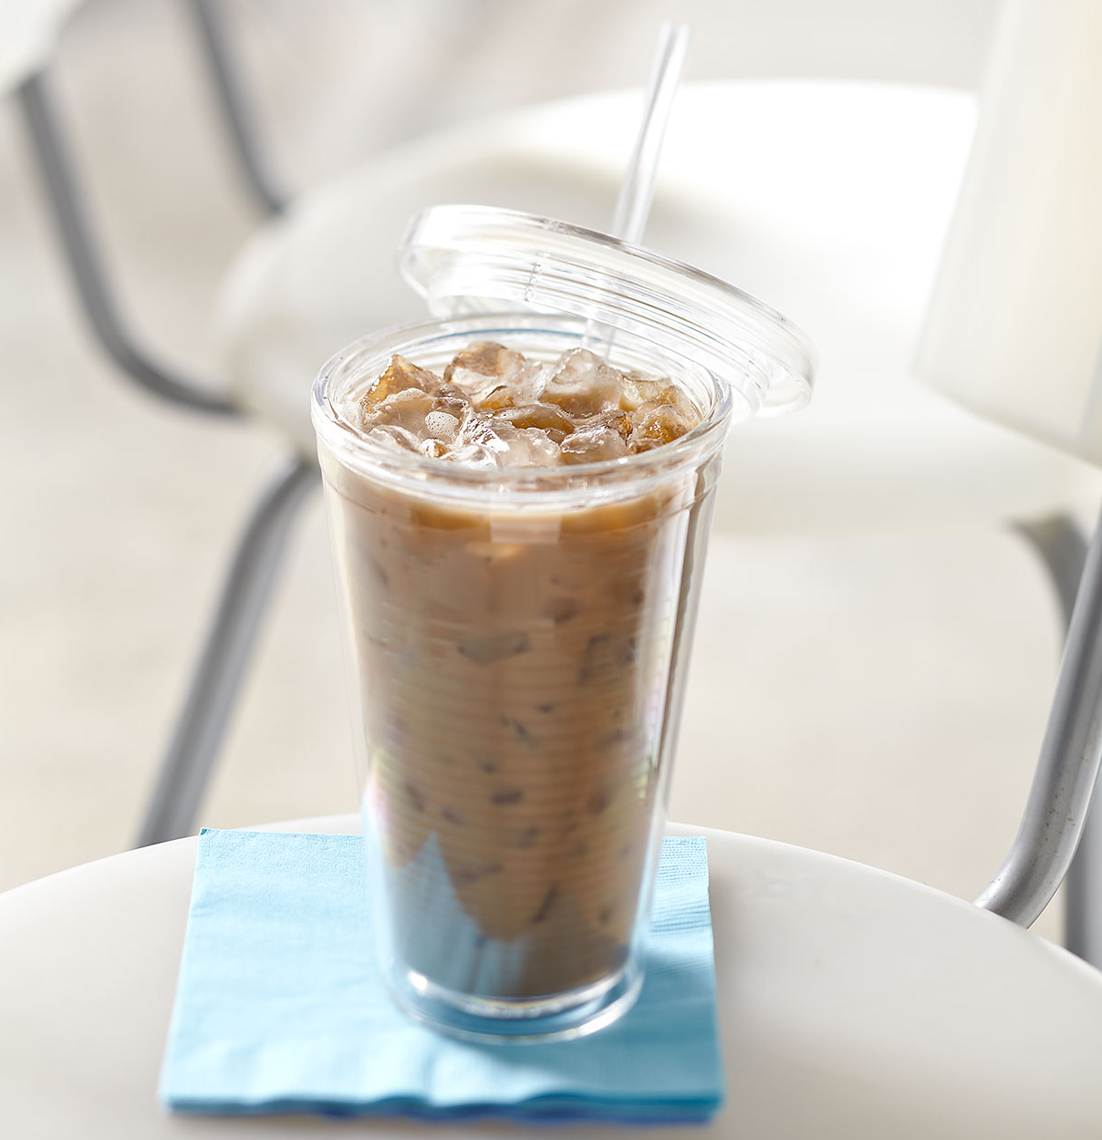 Iced Coffee | Beverage Photographer, Marshall Gordon